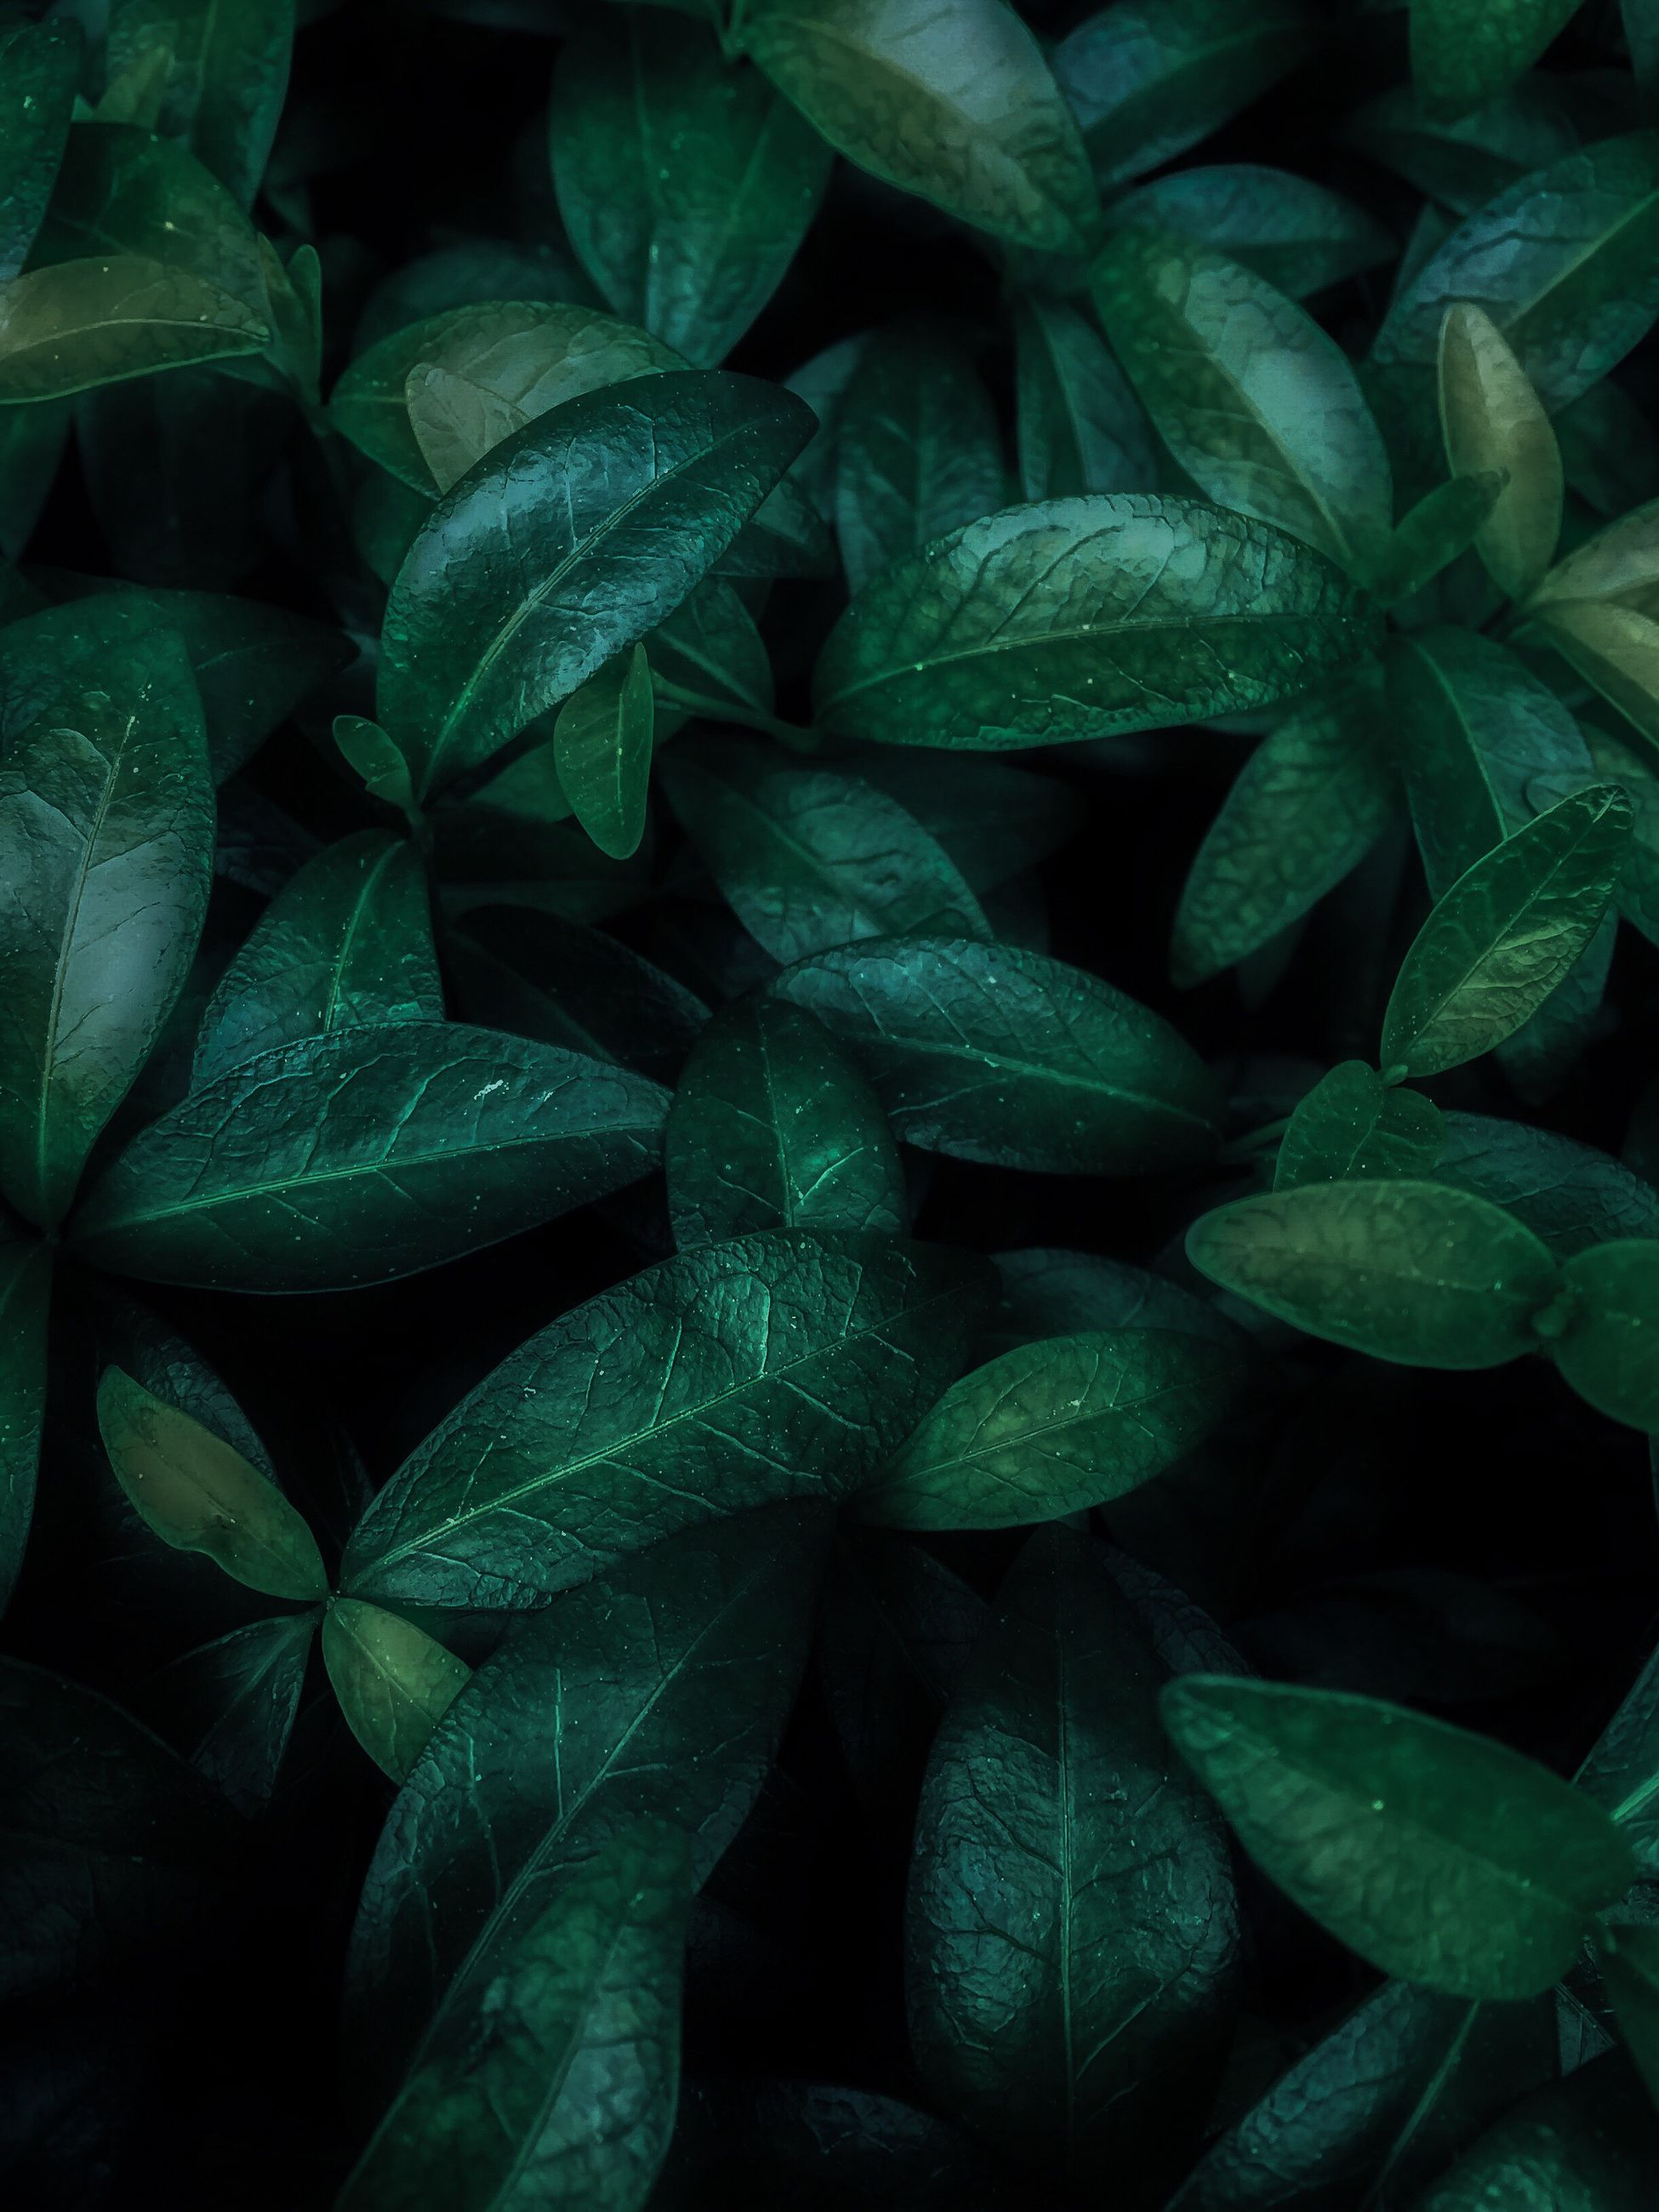 full frame, backgrounds, leaf, plant, freshness, close-up, lush foliage, nature, growth, textured, fragility, green, green color, abundance, day, outdoors, botany, leaf vein, beauty in nature, repetition, large group of objects, vibrant color